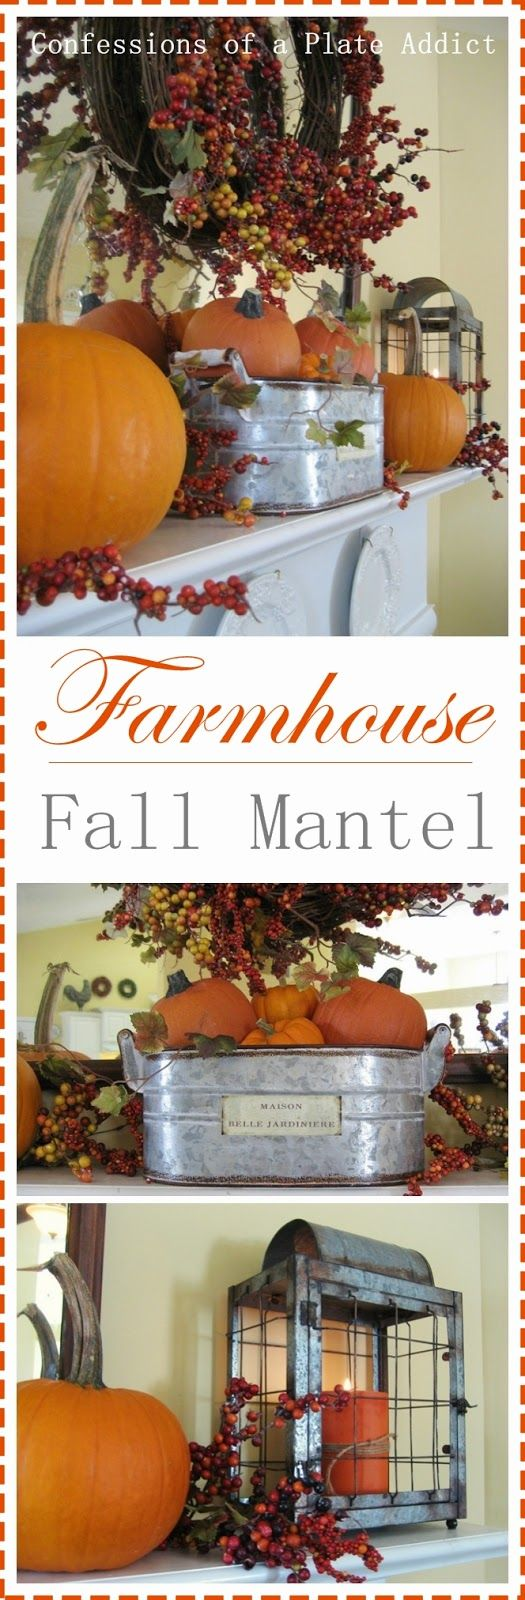 CONFESSIONS OF A PLATE ADDICT My Farmhouse Fall Mantel